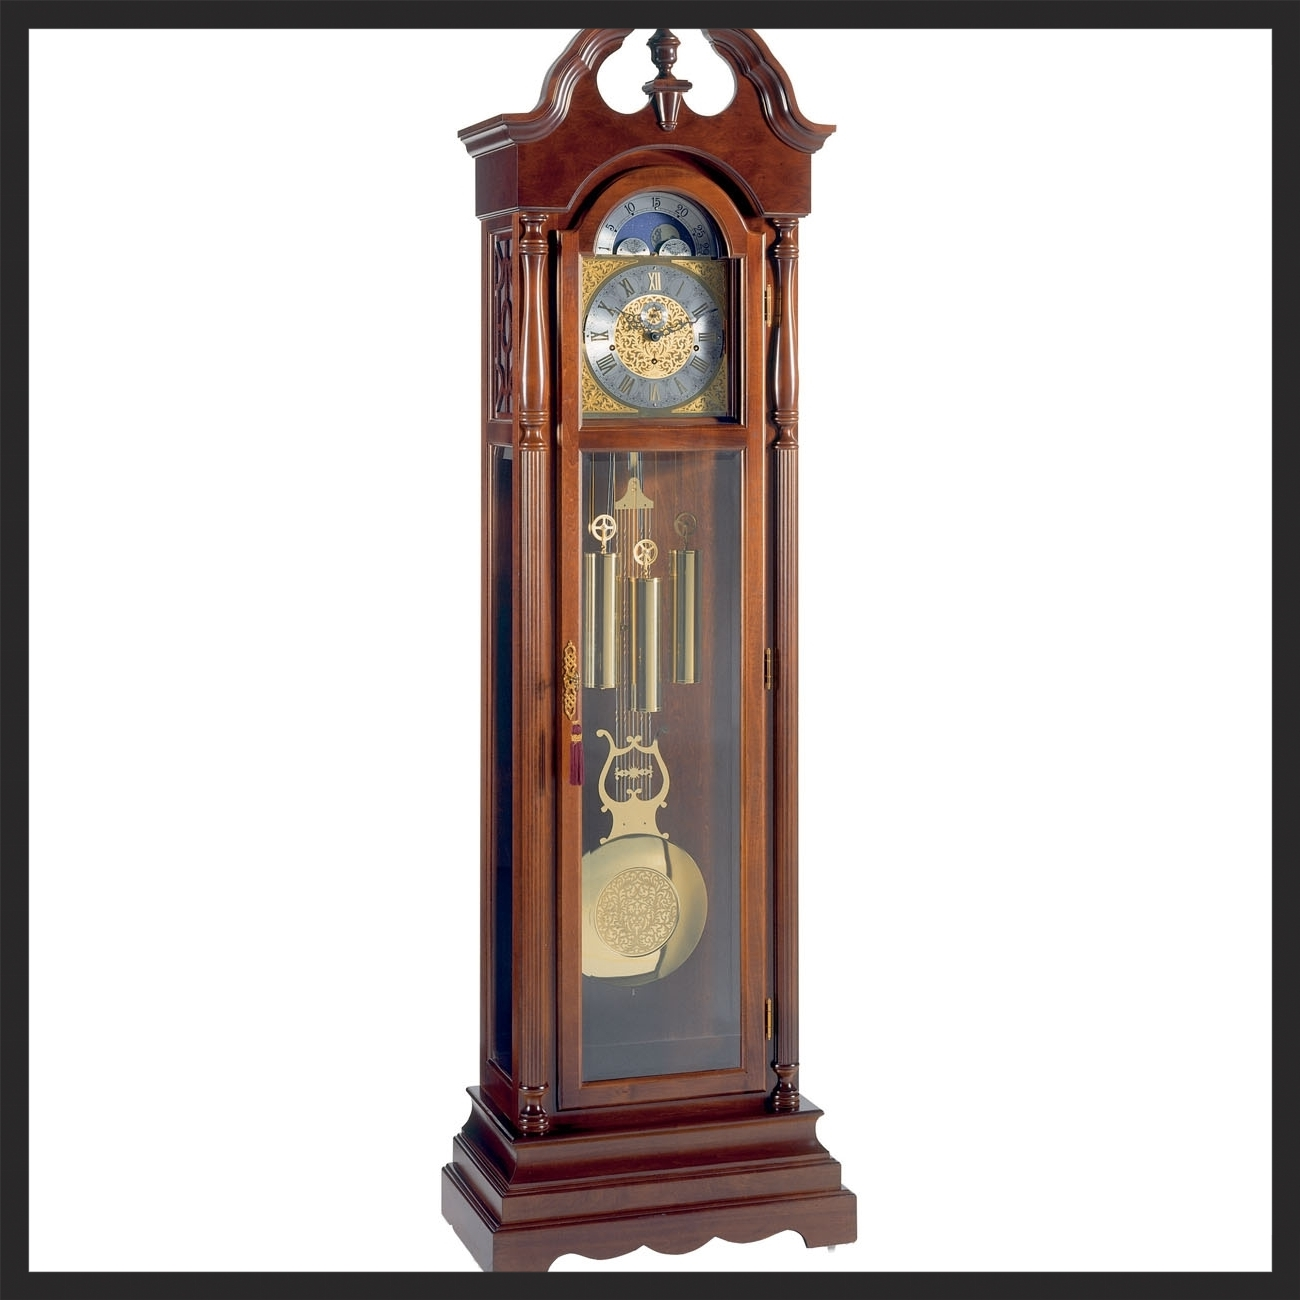 39-5-grandfather-clock.jpg